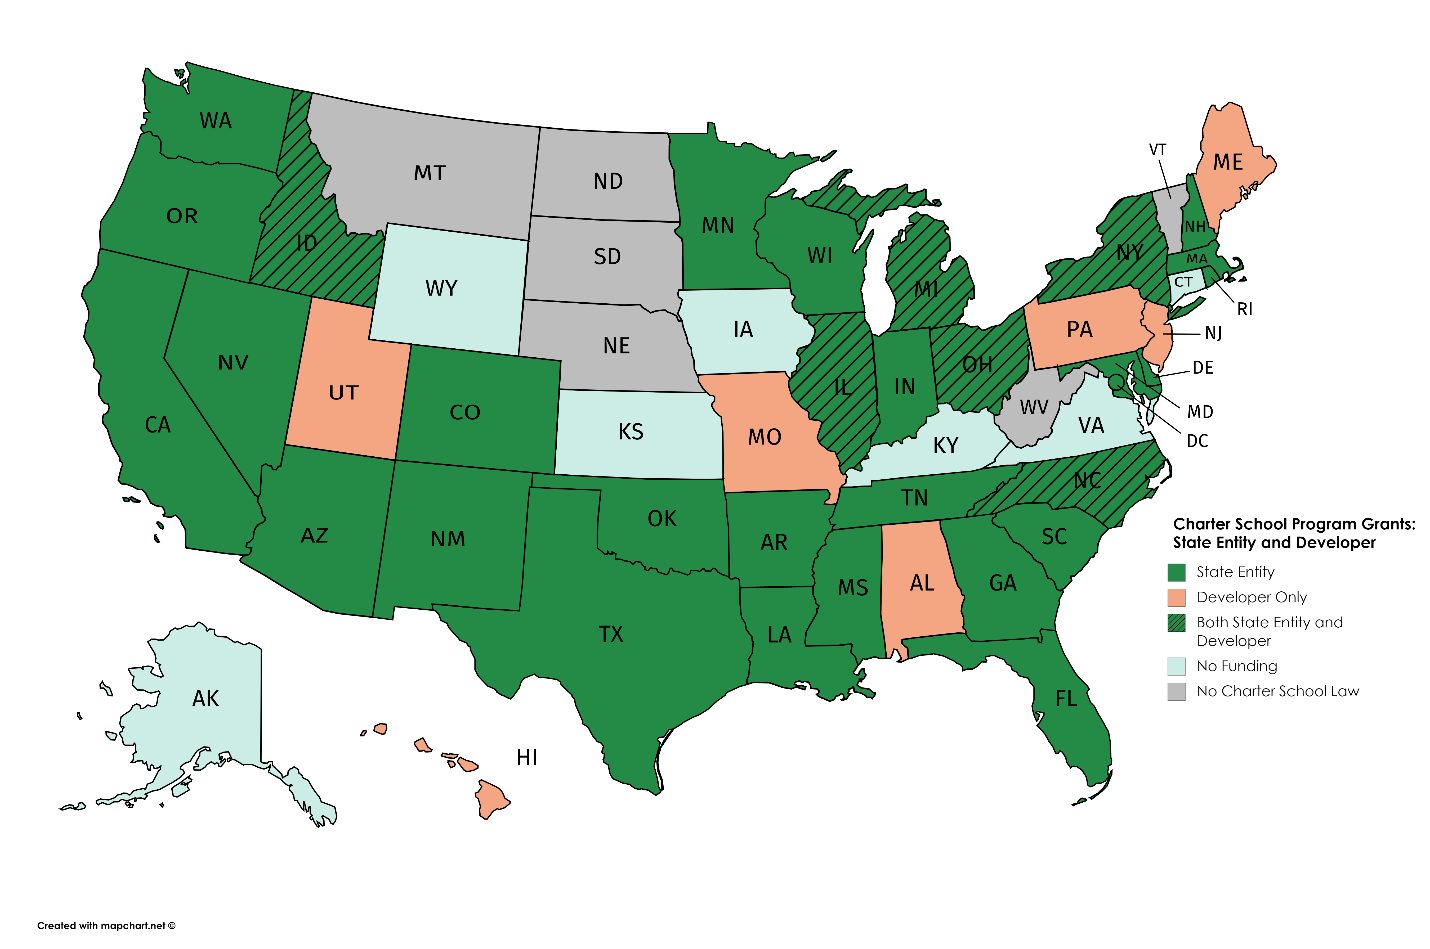 Map of current charter schools program CSP grants: state entity and developer grants